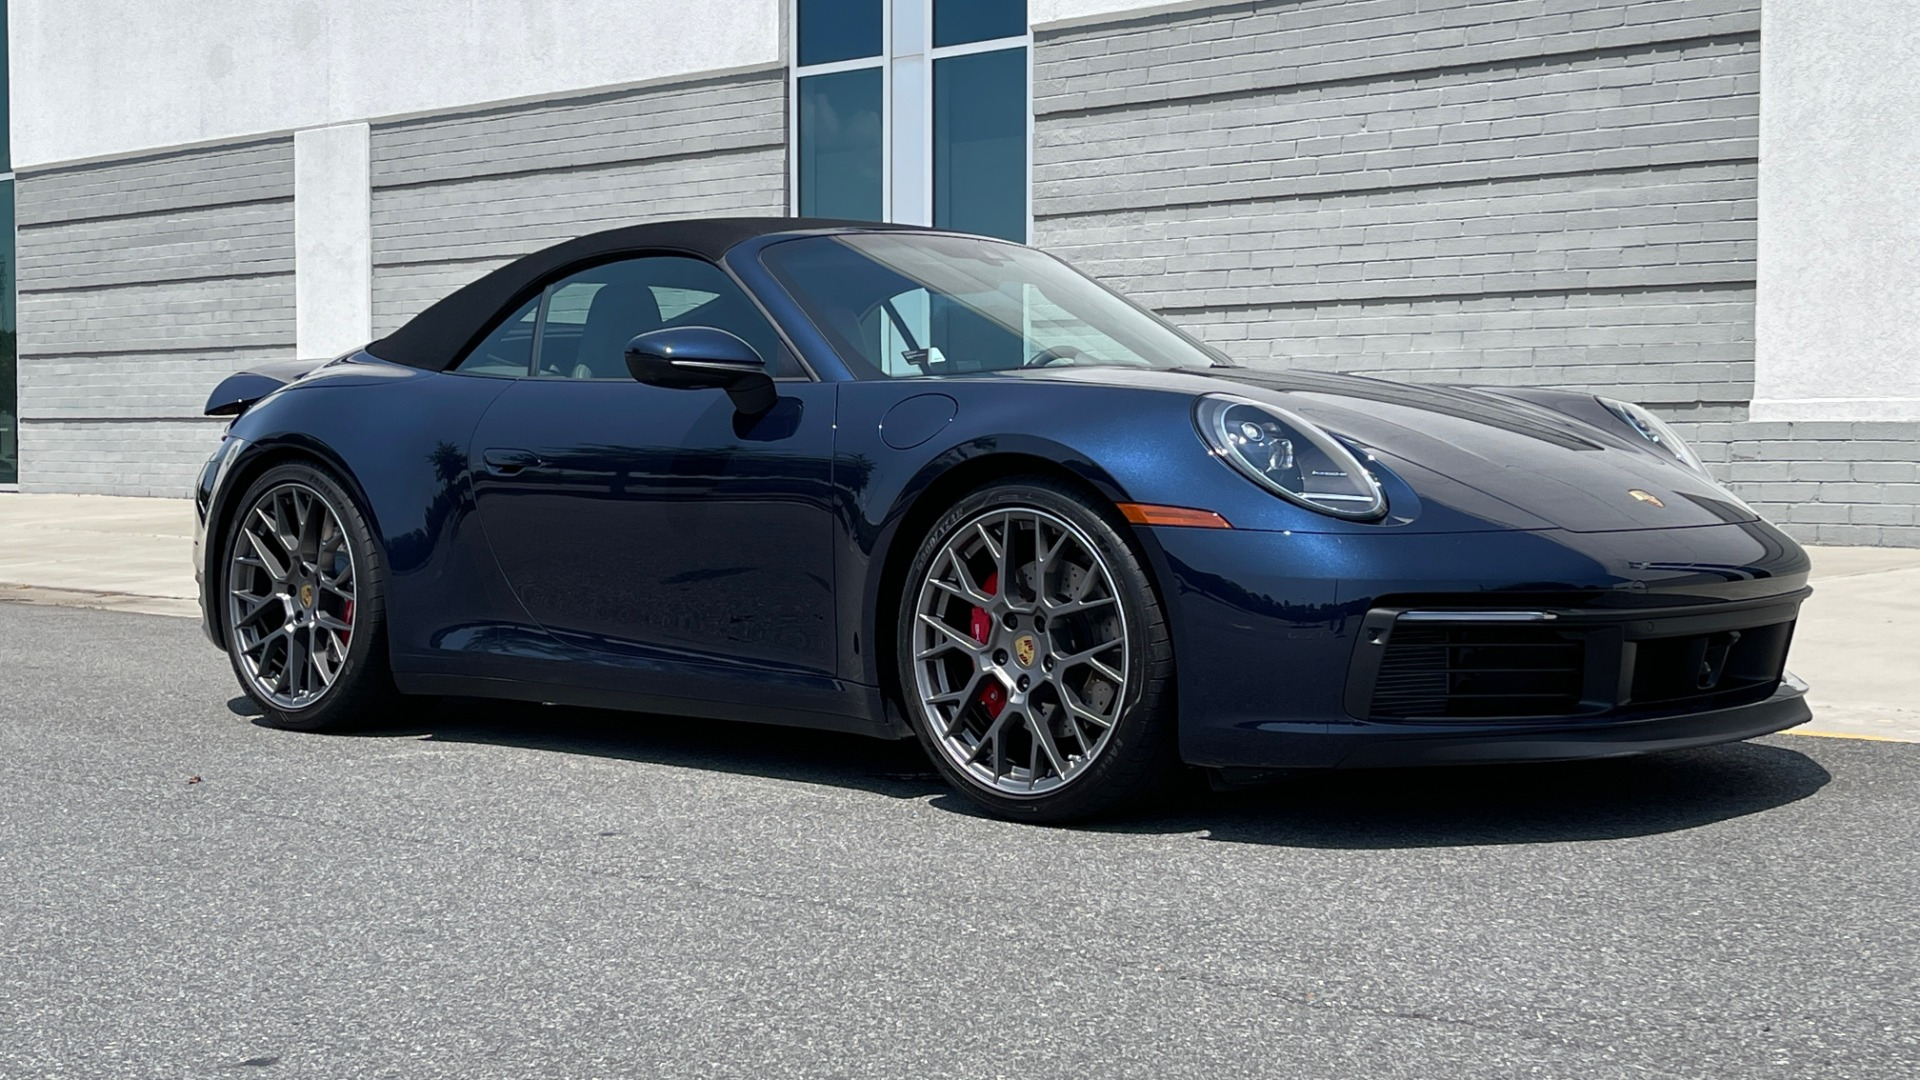 Used 2020 Porsche 911 CARRERA S CABRIOLET PREMIUM SPORT / LCA / ACC / BOSE / REARVIEW for sale $159,995 at Formula Imports in Charlotte NC 28227 8